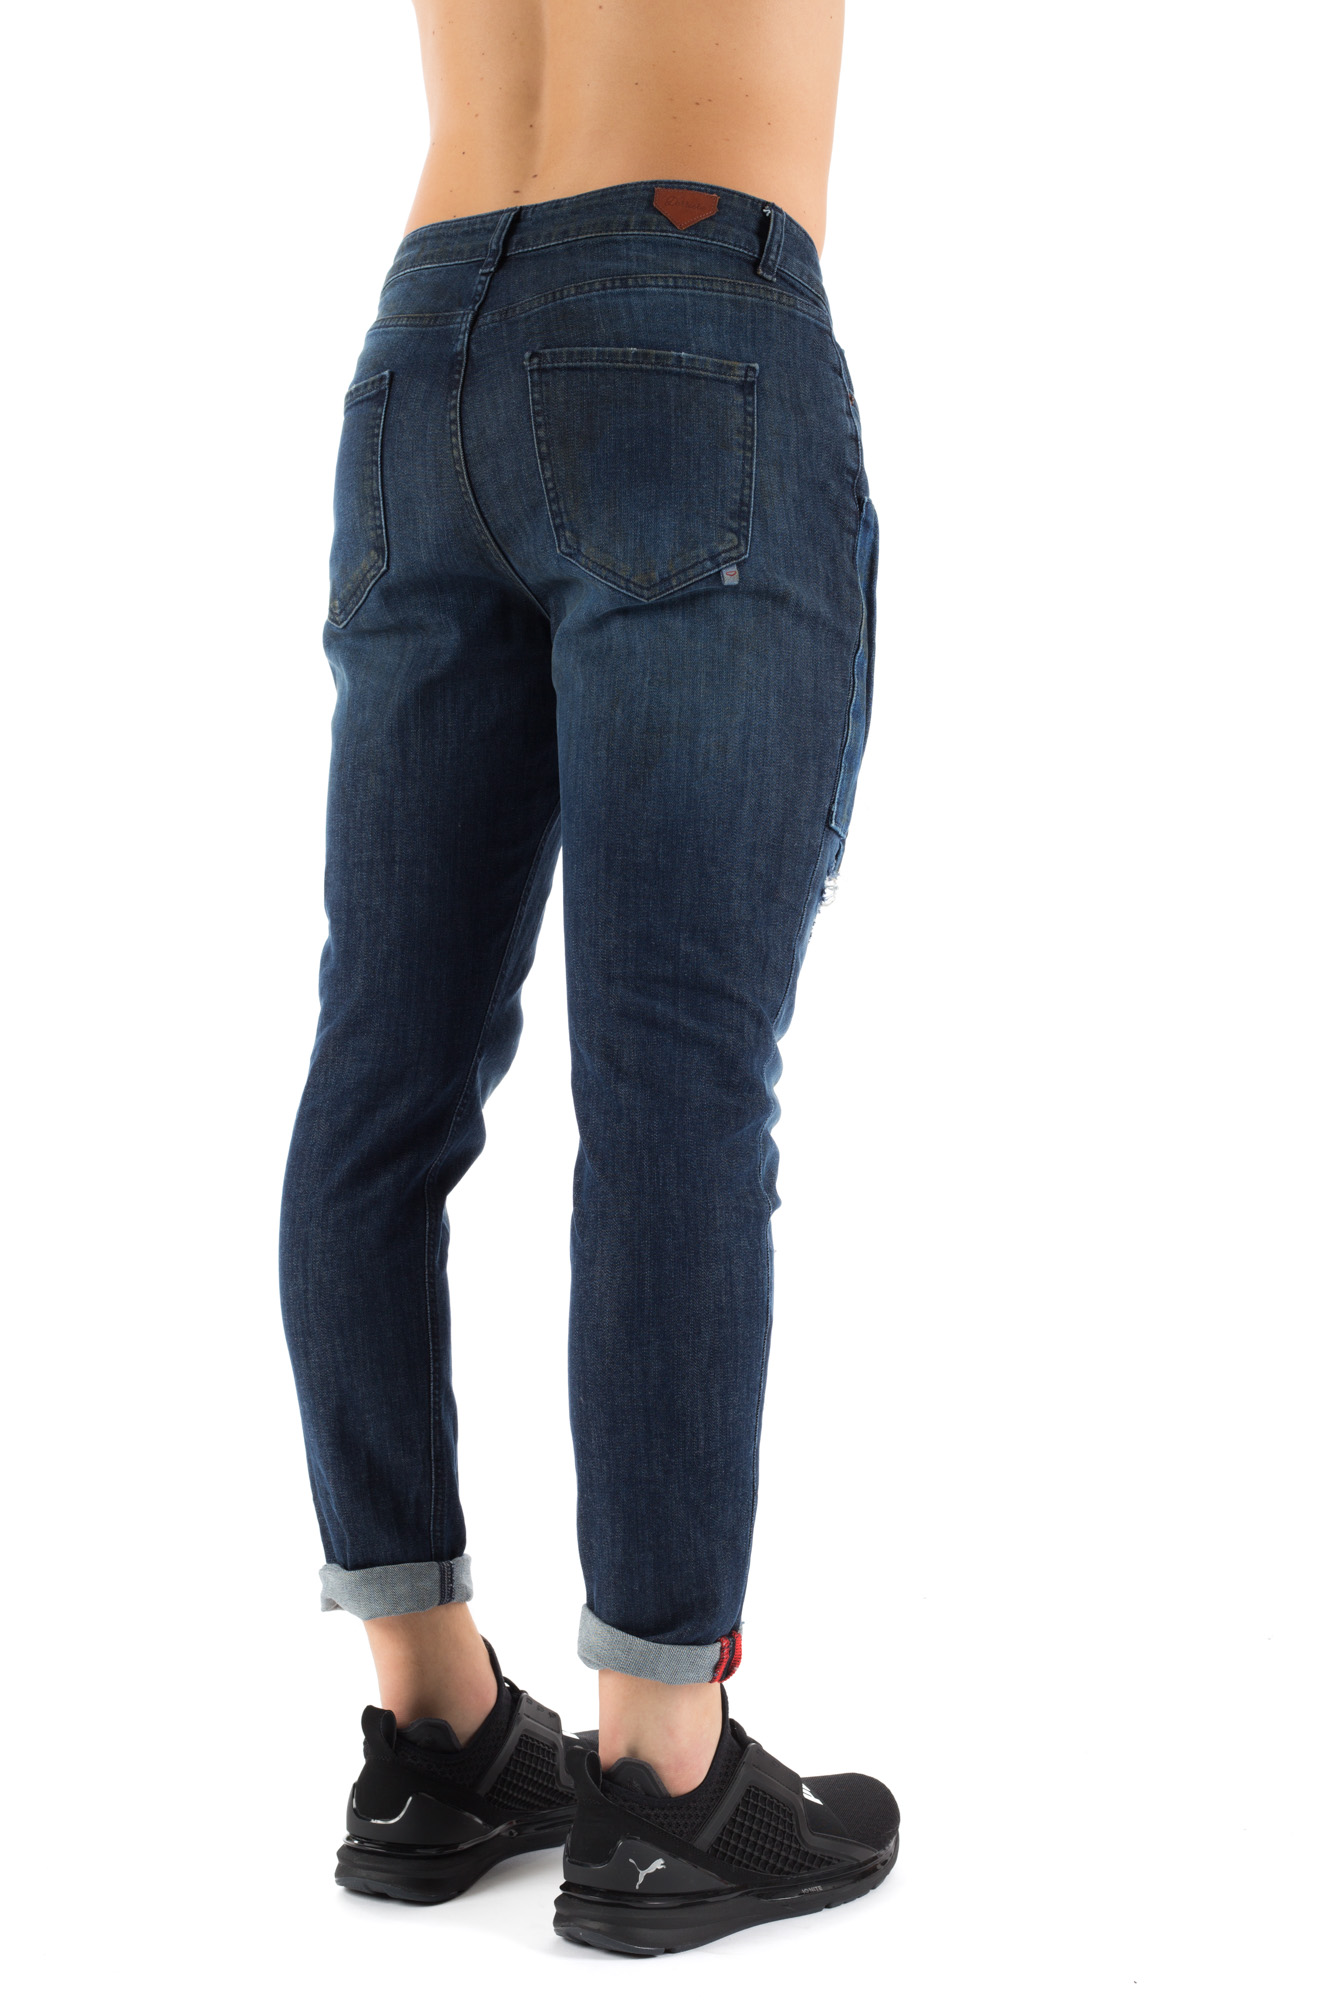 Derrière - Dark stonewashed jeans with patch